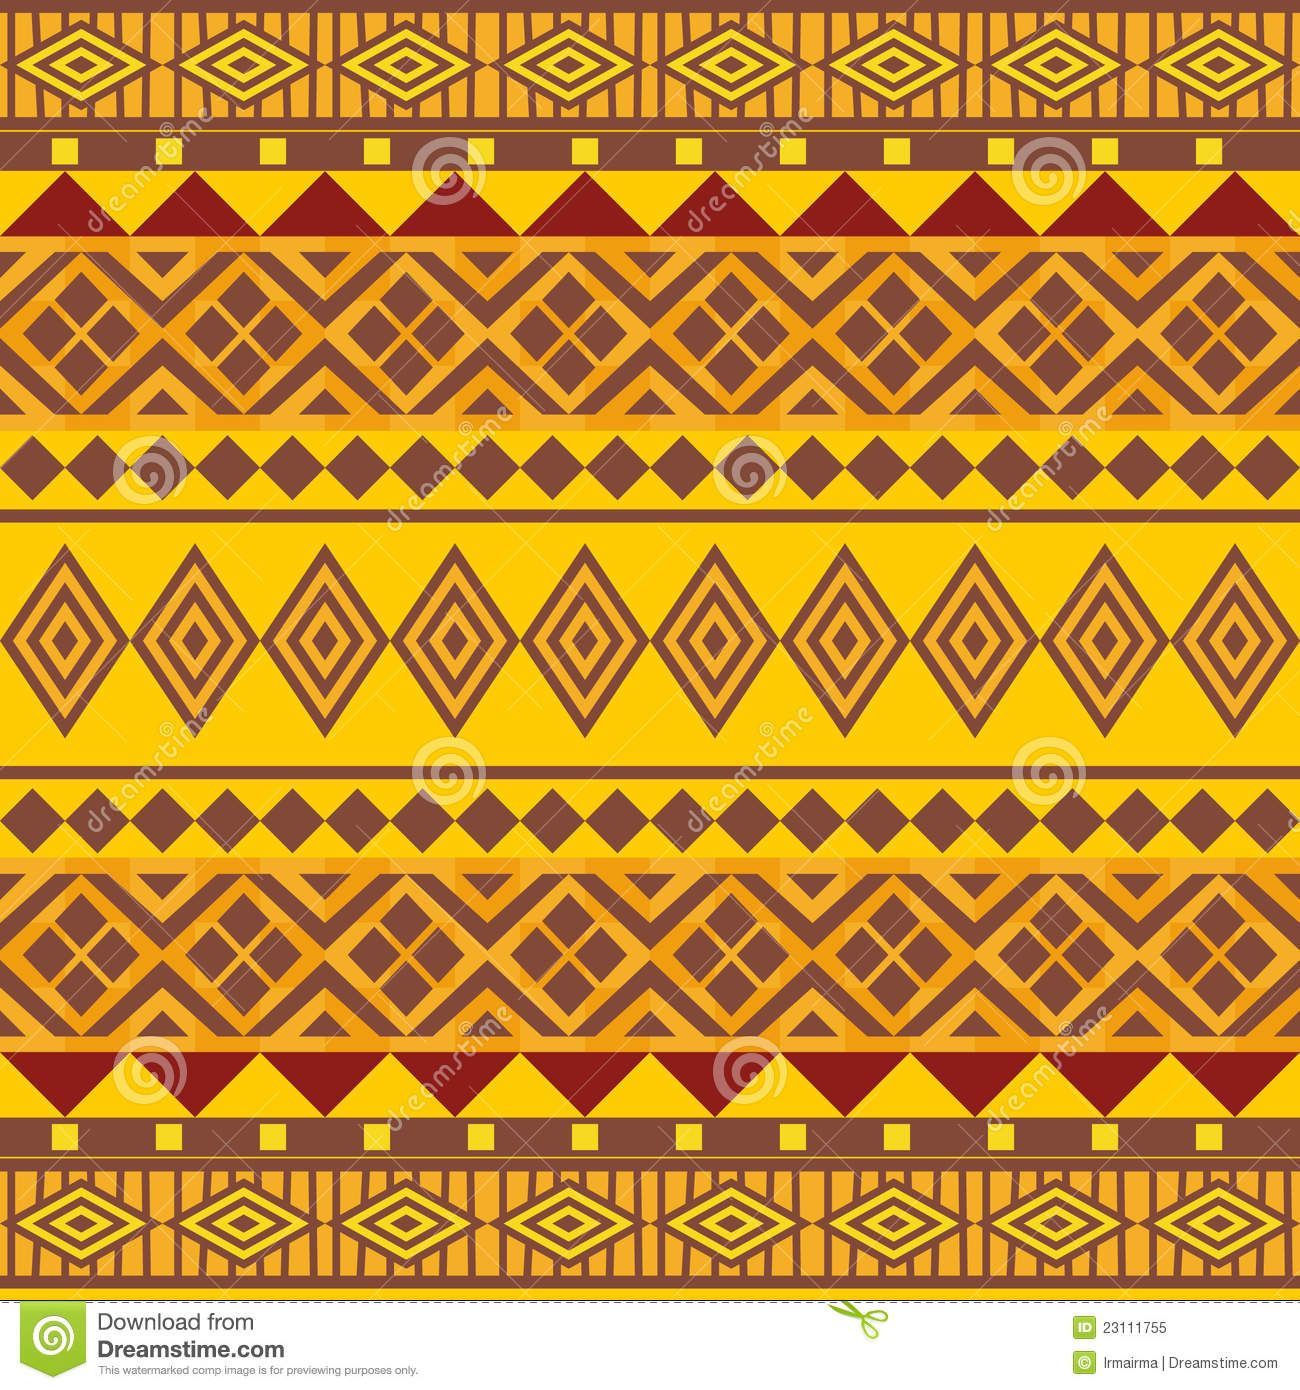 african tribal patterns - HD 1300×1390